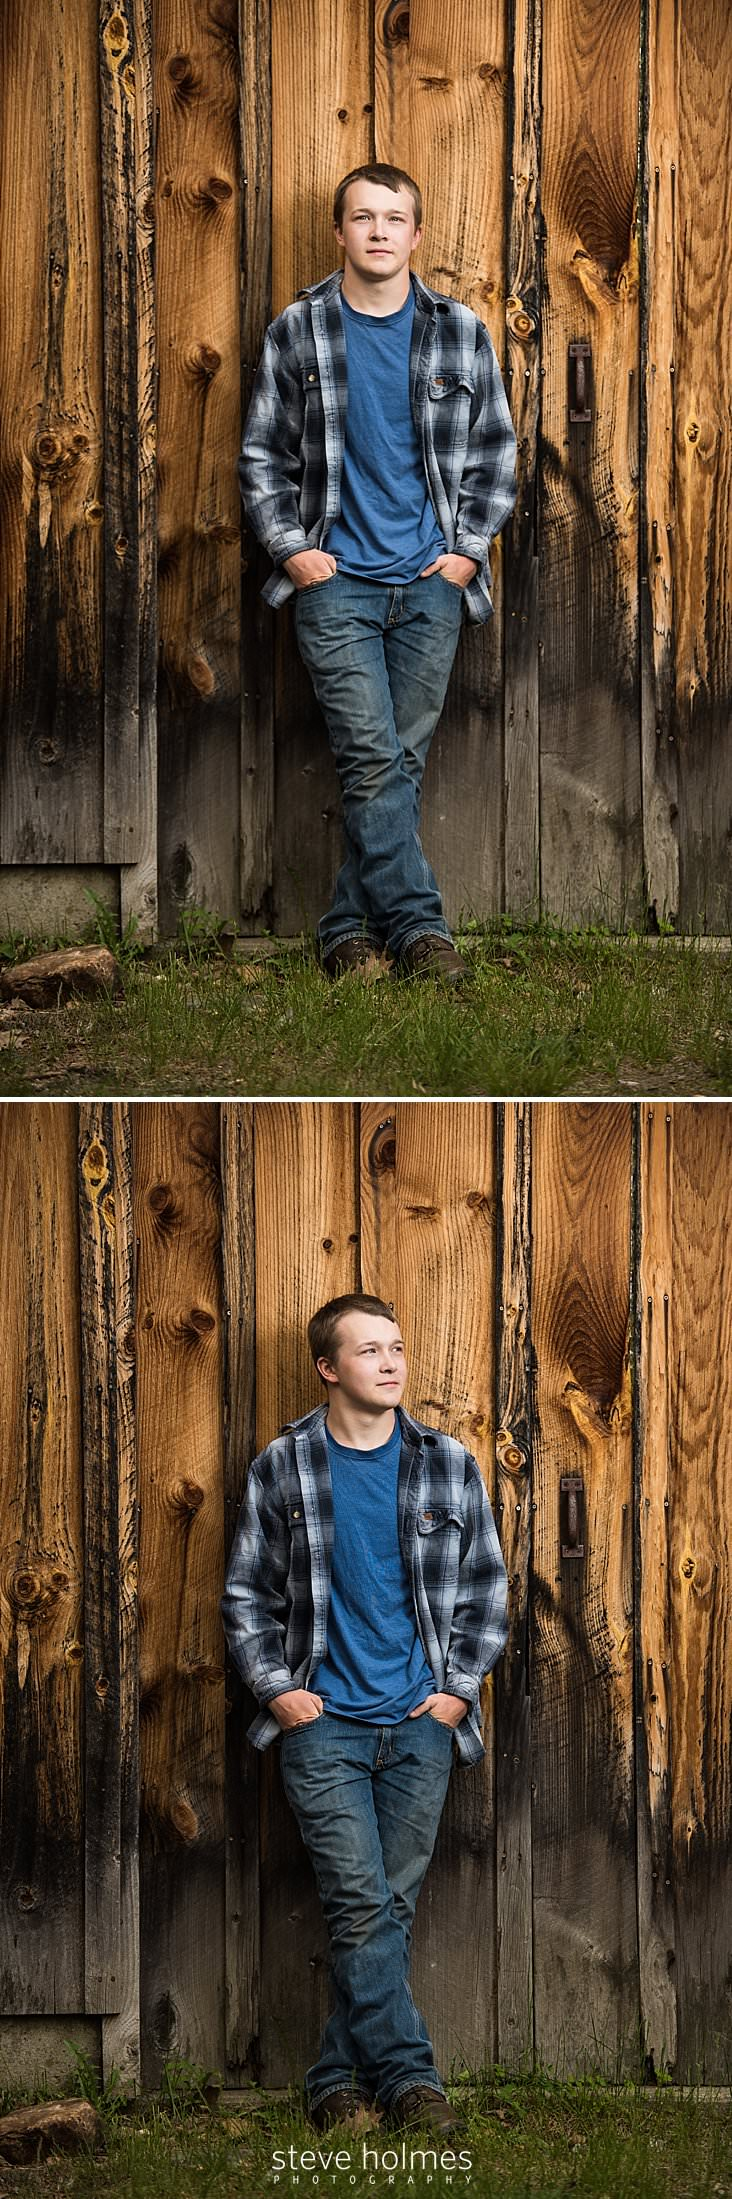 13_Teen rests casually against the side of a barn.jpg